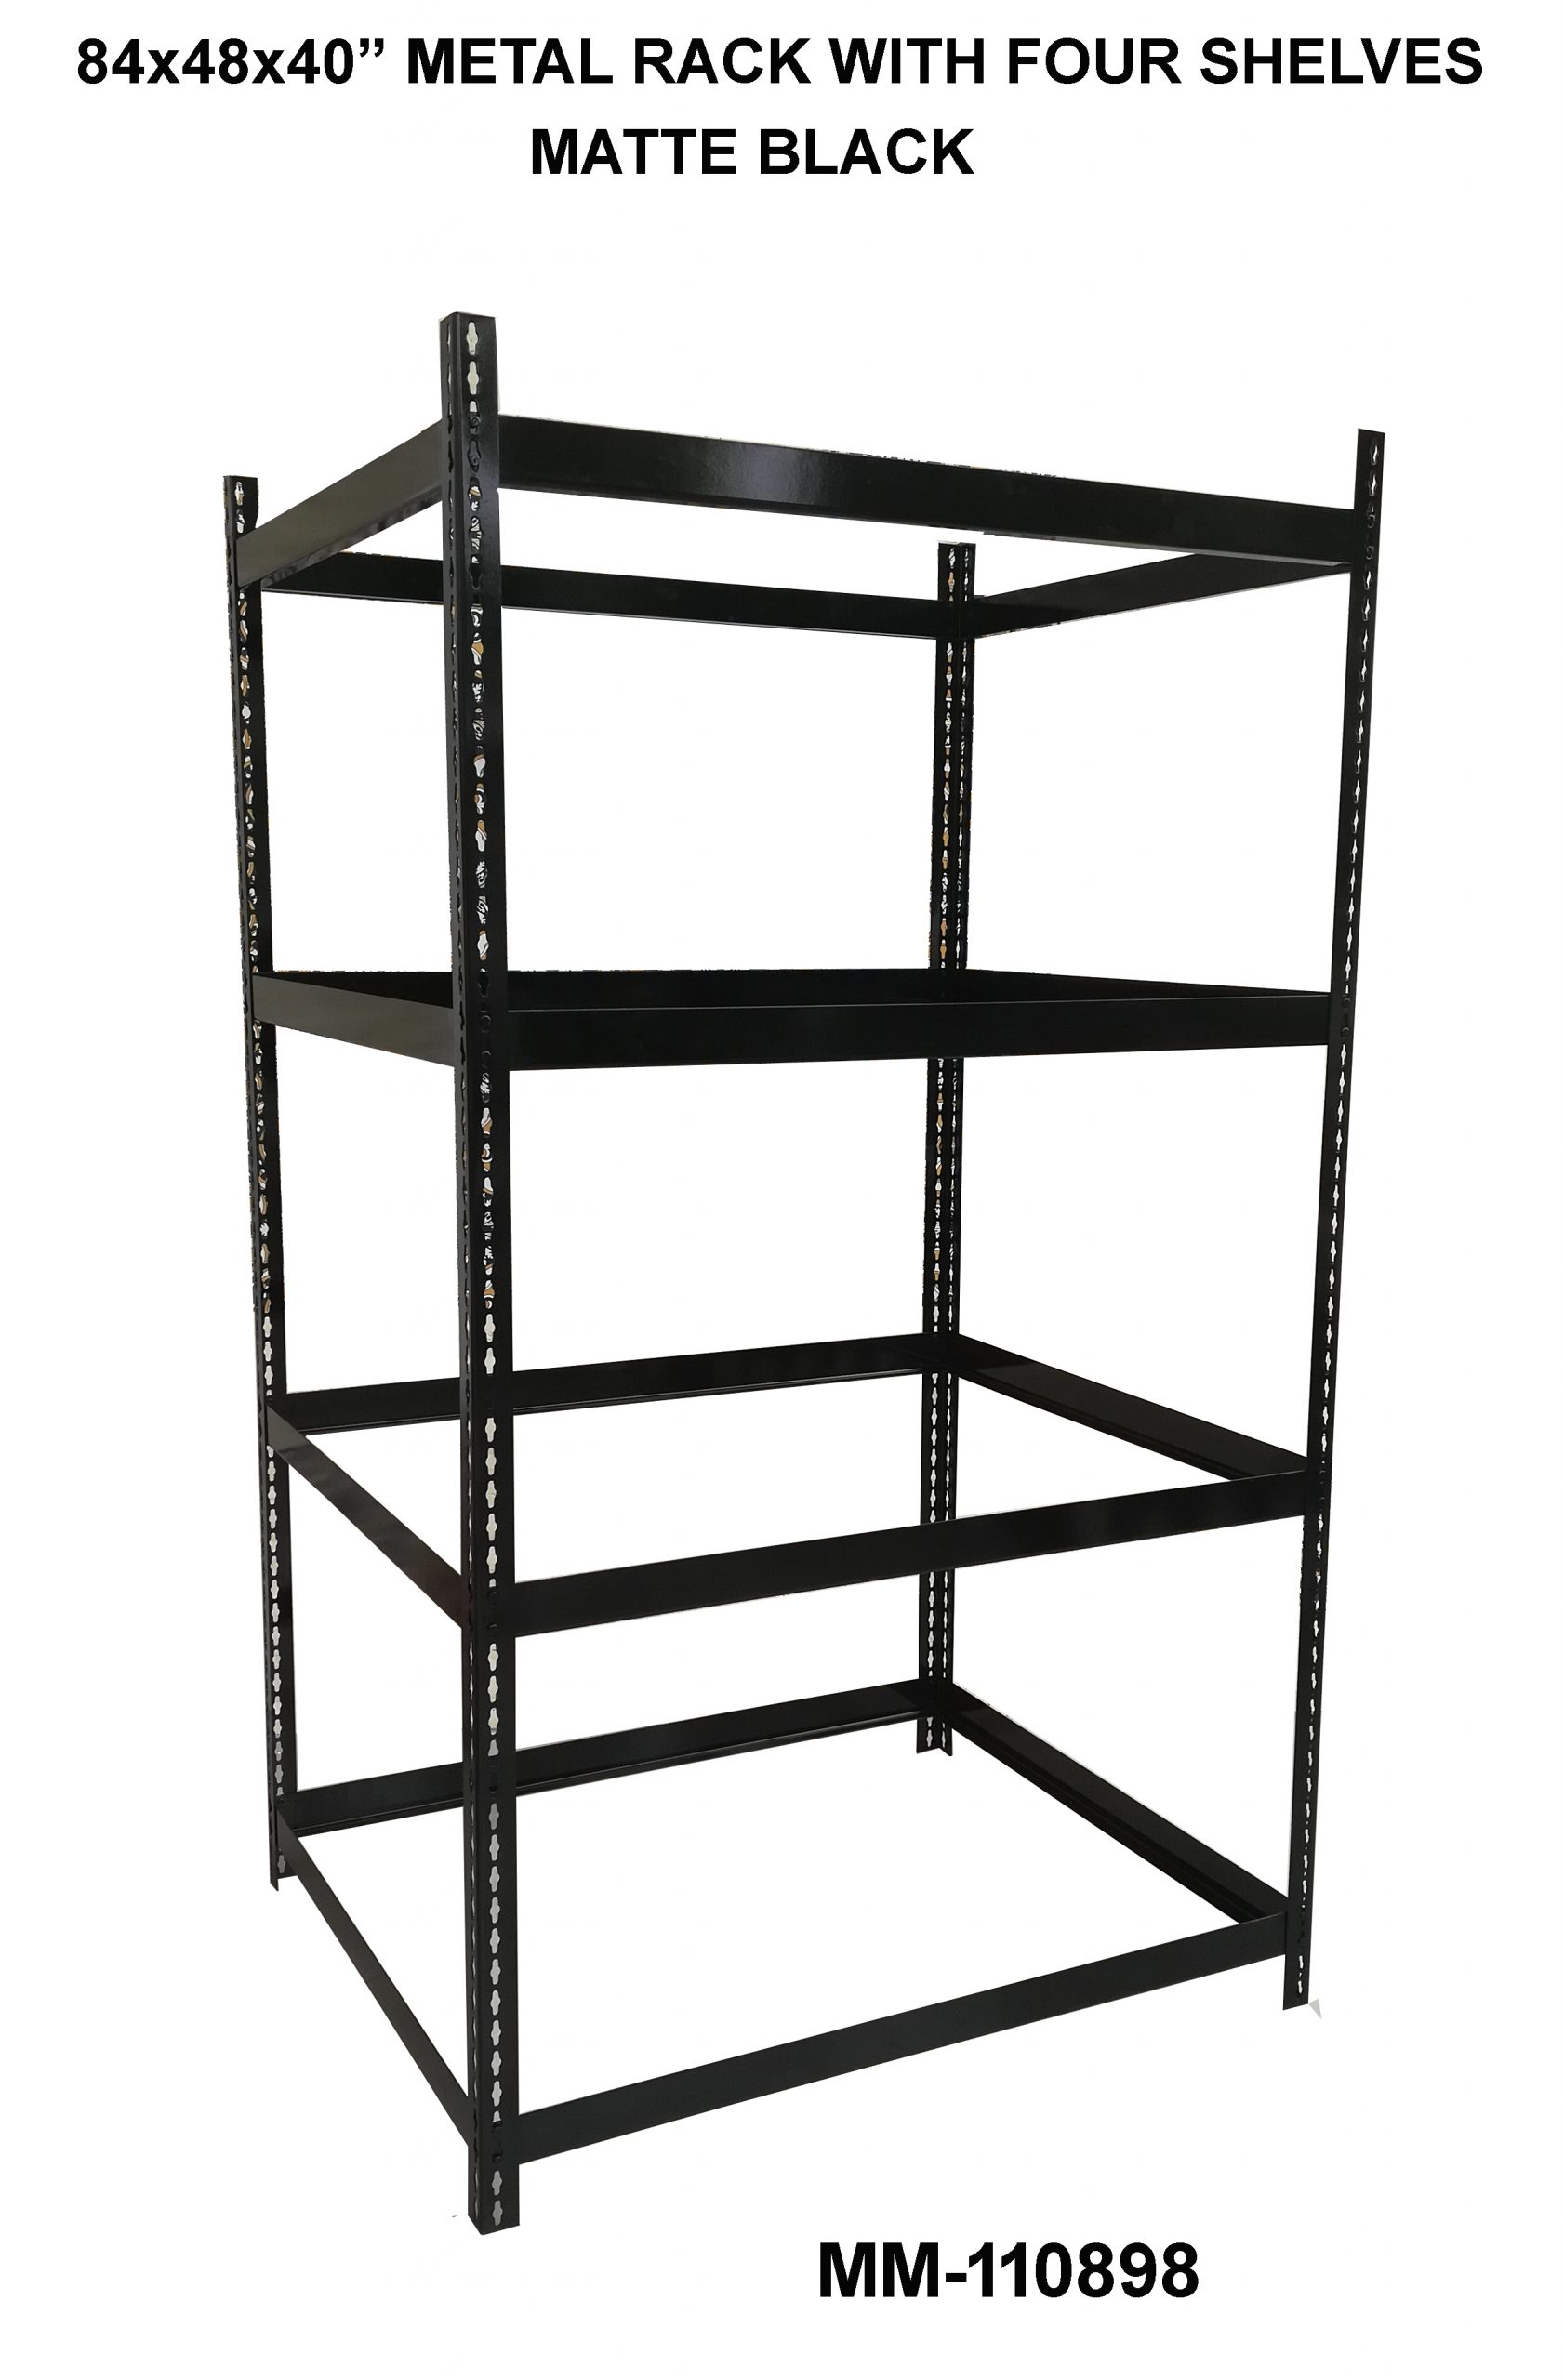 Metal Rack with four shelves white black